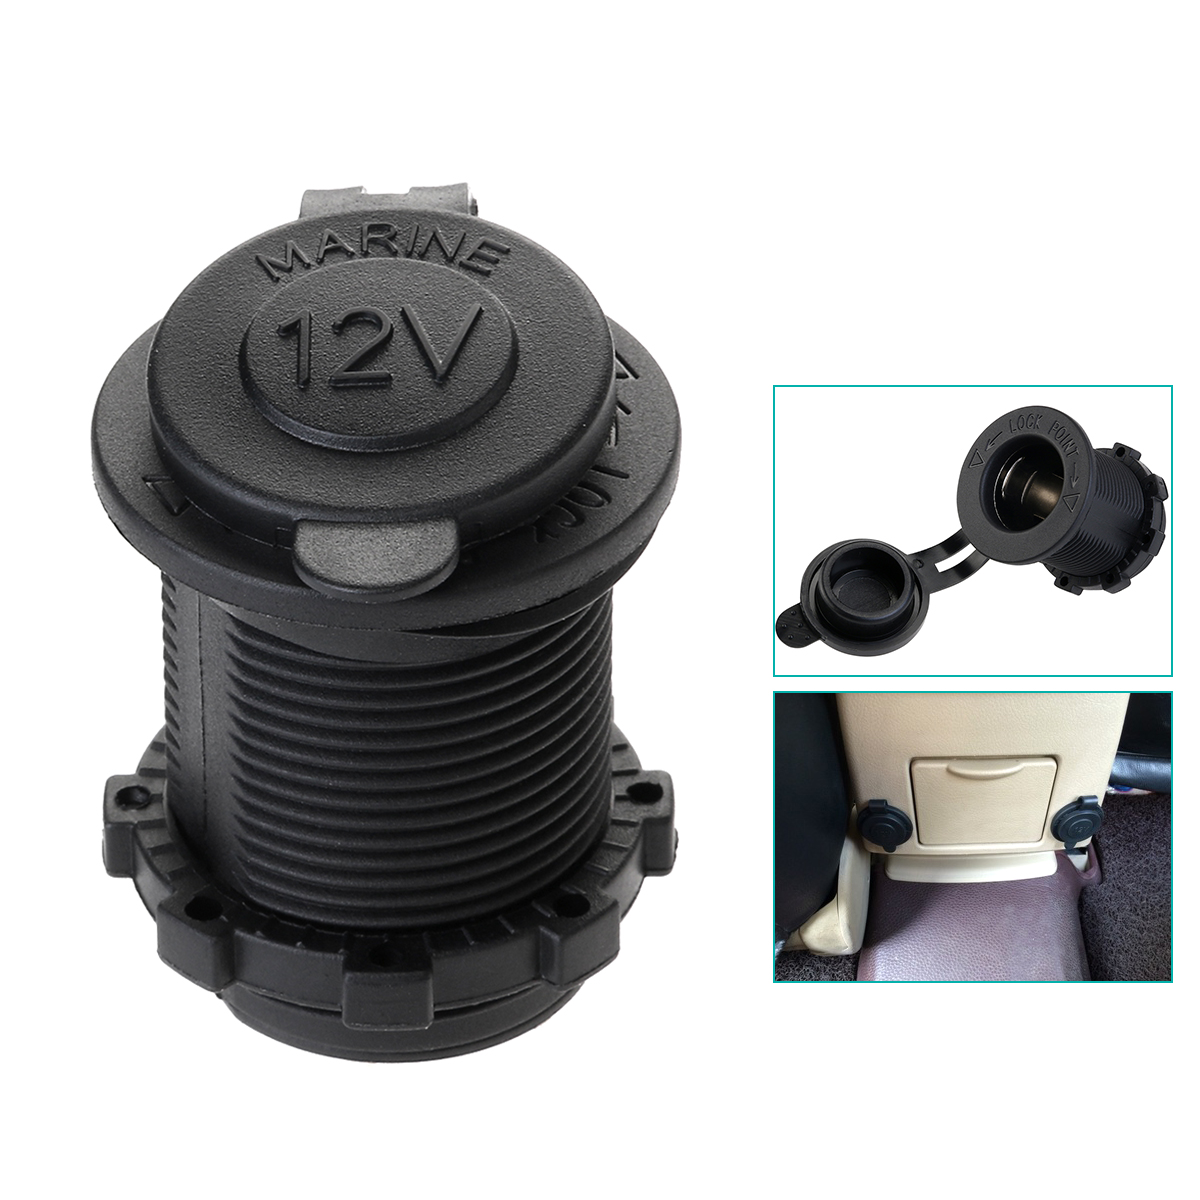 FOXNOVO Portable Universal 12V-24V Waterproof Marine Boat Car Motorbike Cigarette Lighter Power Supply Socket Outlet Adapter Plug (Black)